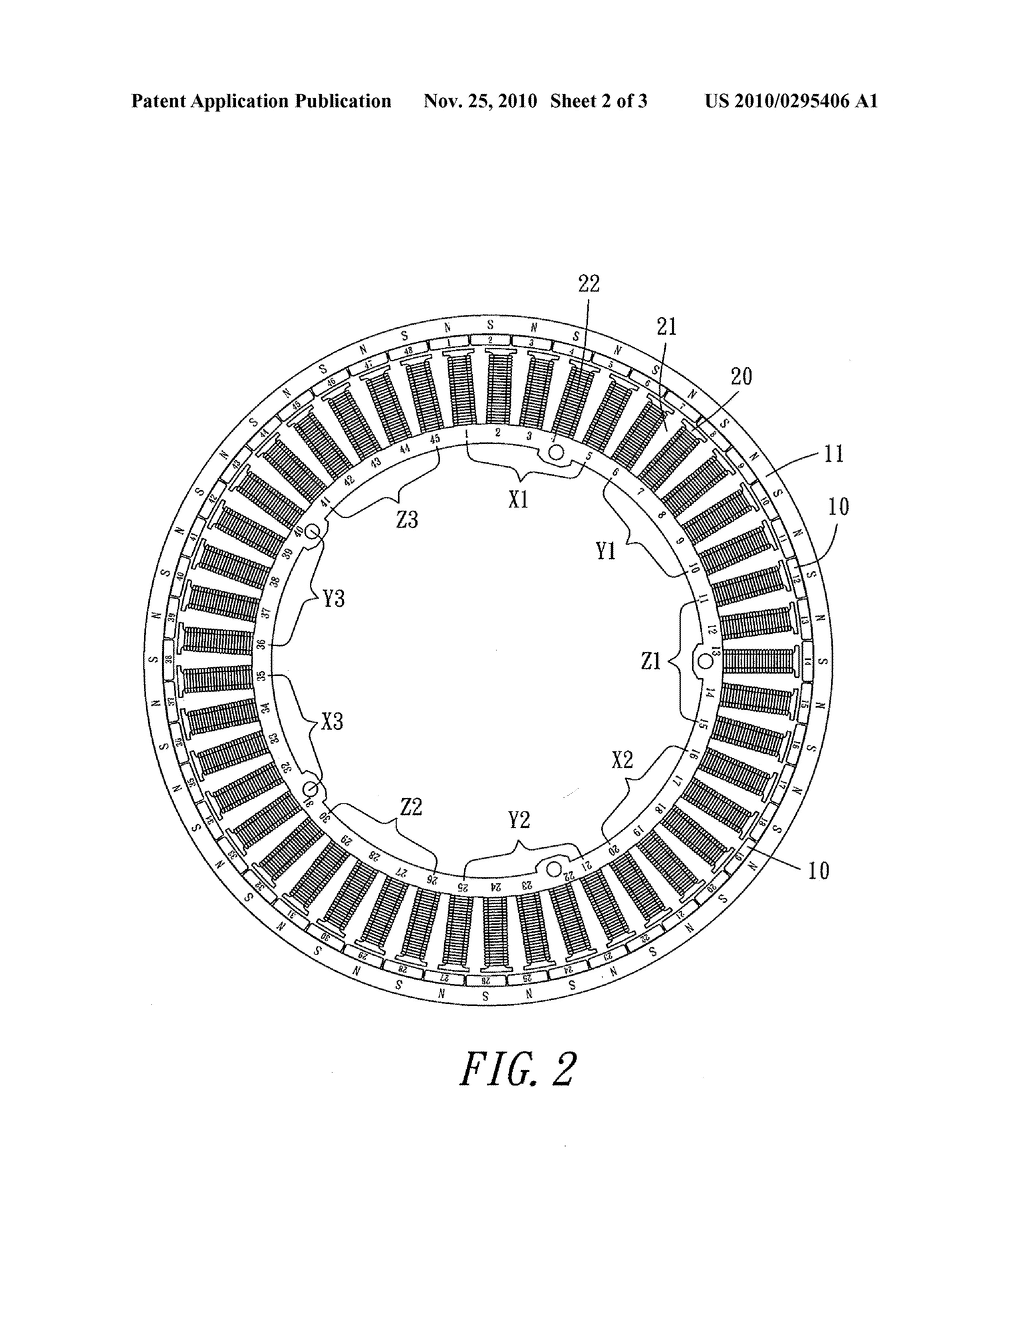 Brushless DC Motor Structure With a Constant Ratio of Magnetic Rotor